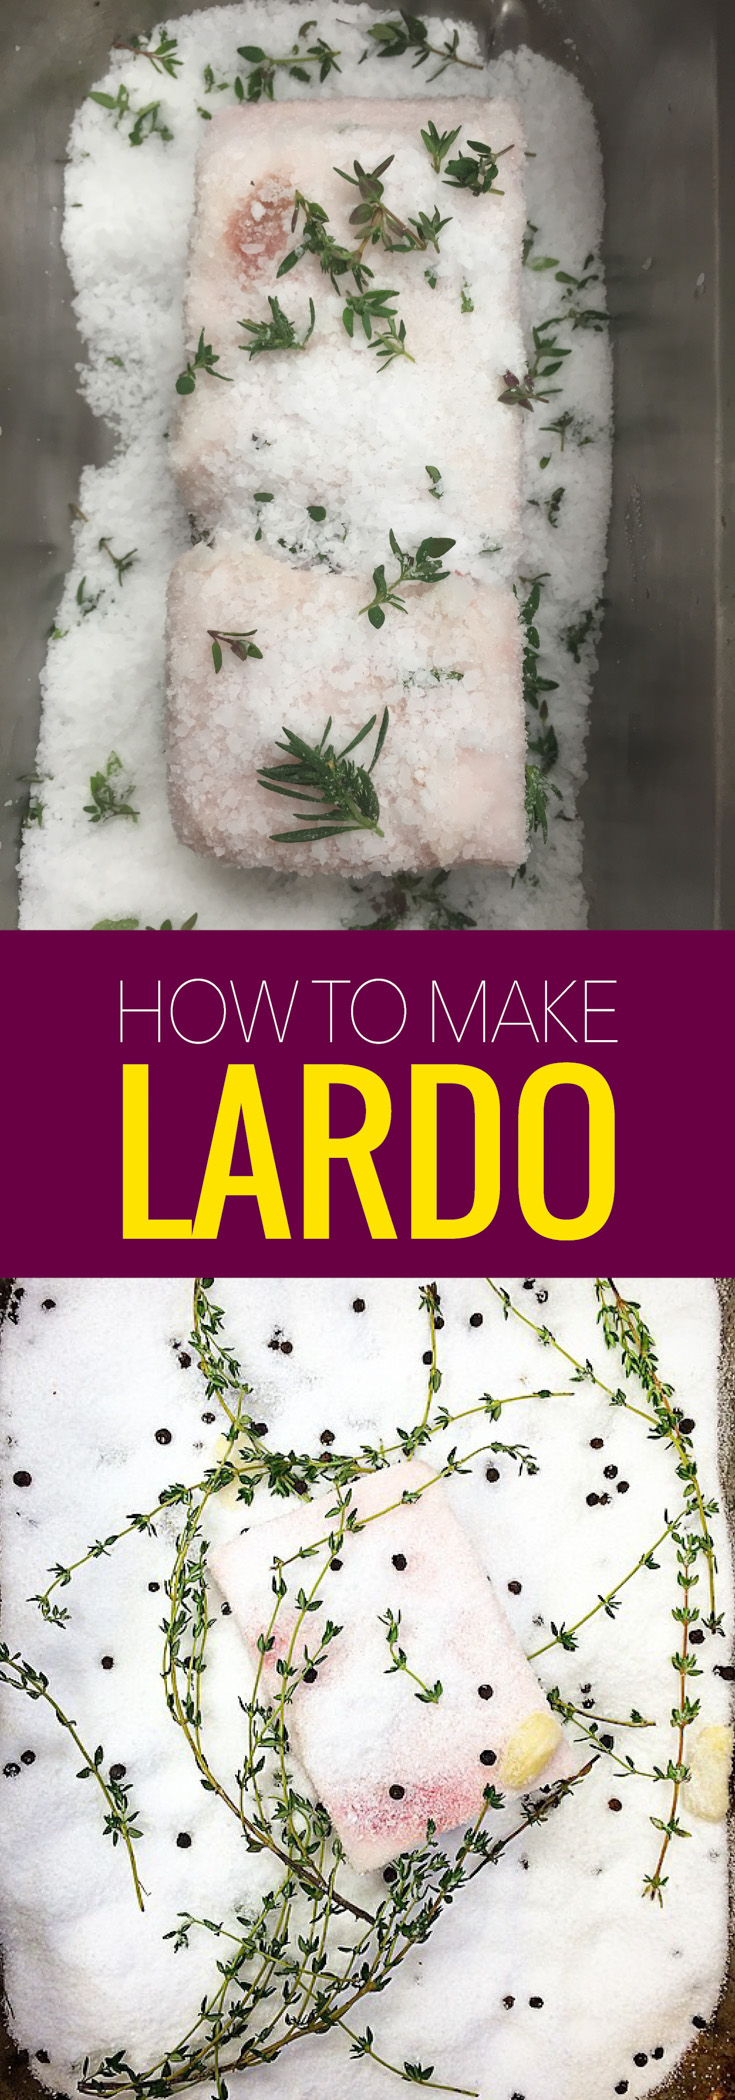 Lardo is cured pork back fat and so delicious. Learn how to make lardo with this easy recipe and impress all your italian friends.